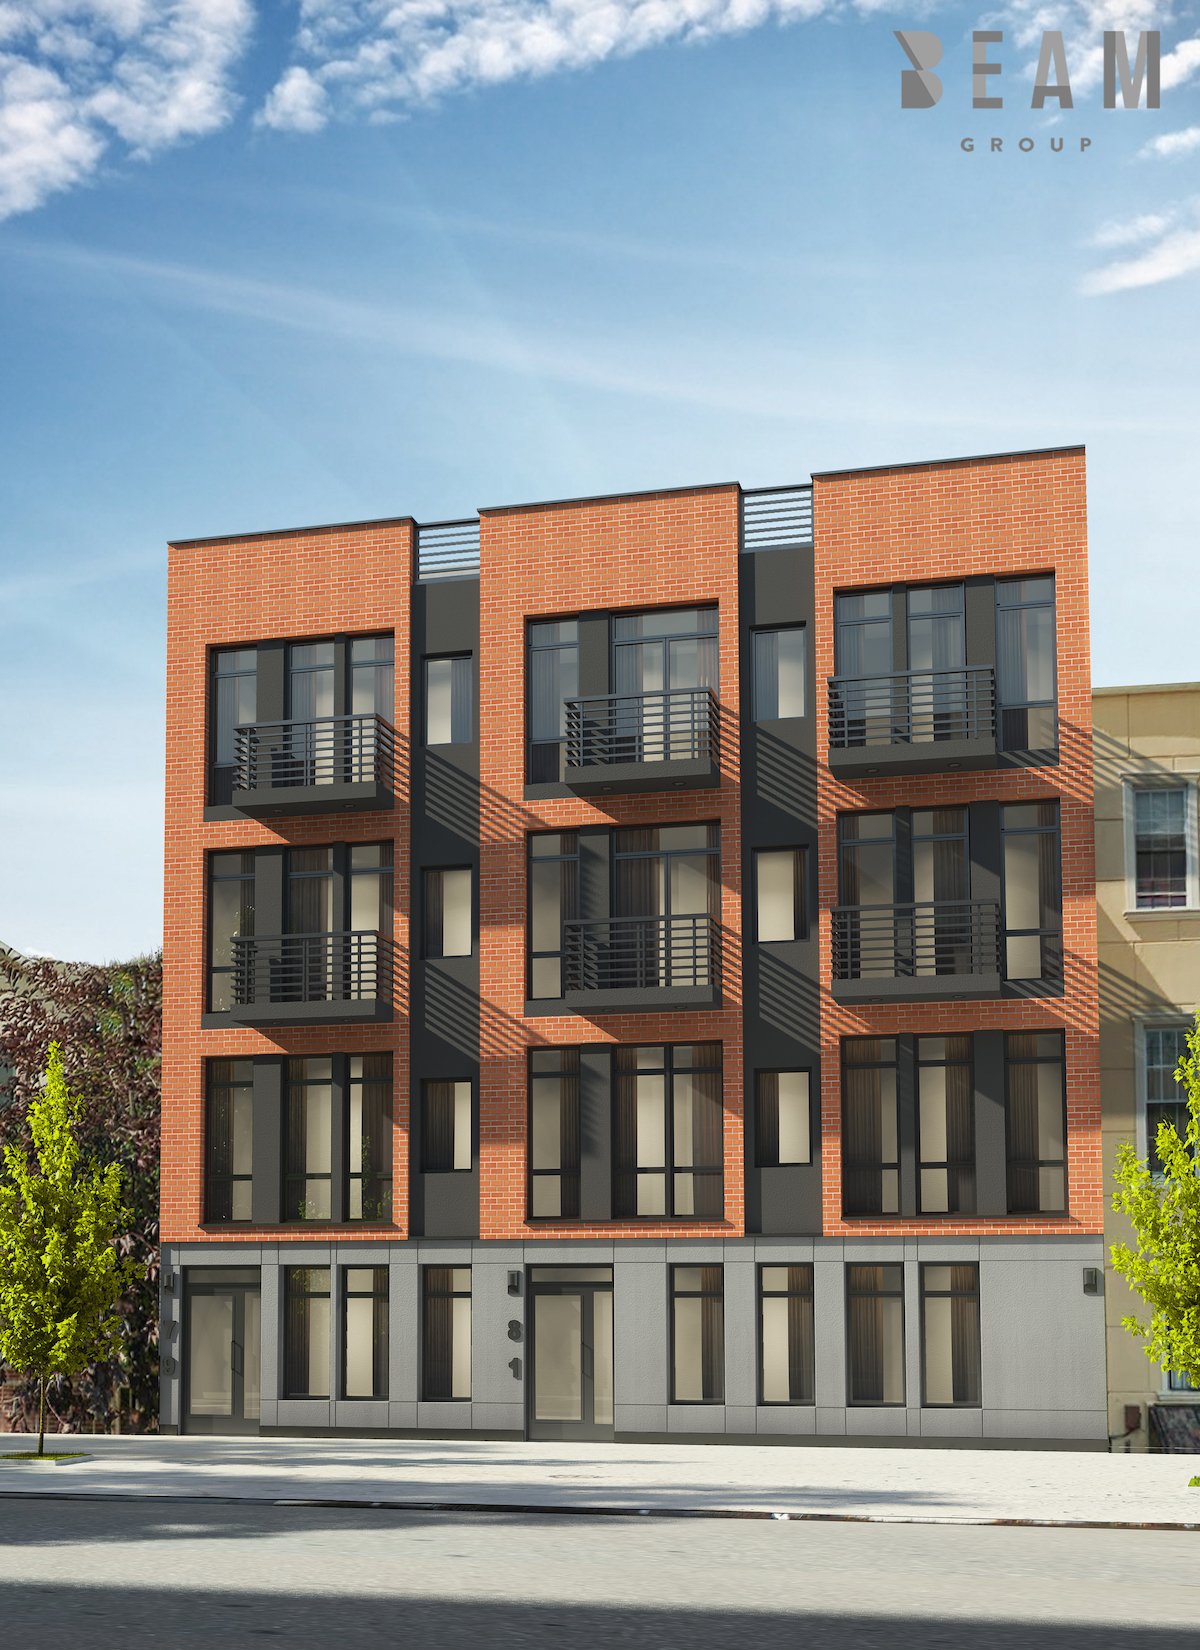 79-81 Stanhope Street, rendering by Beam Group